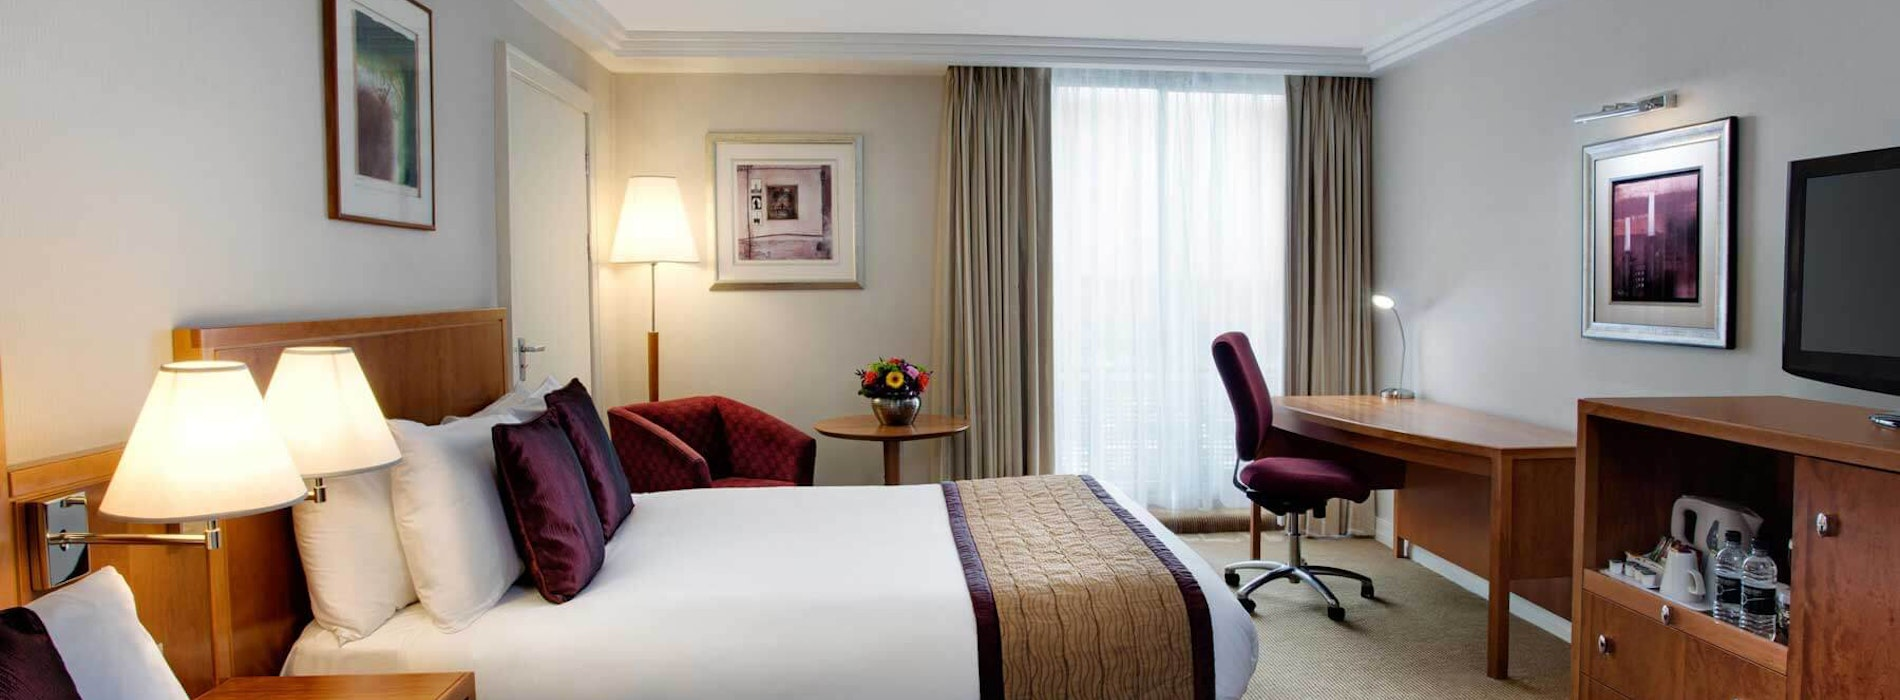 Crowne Plaza Heathrow near Chessington World of Adventures Resort